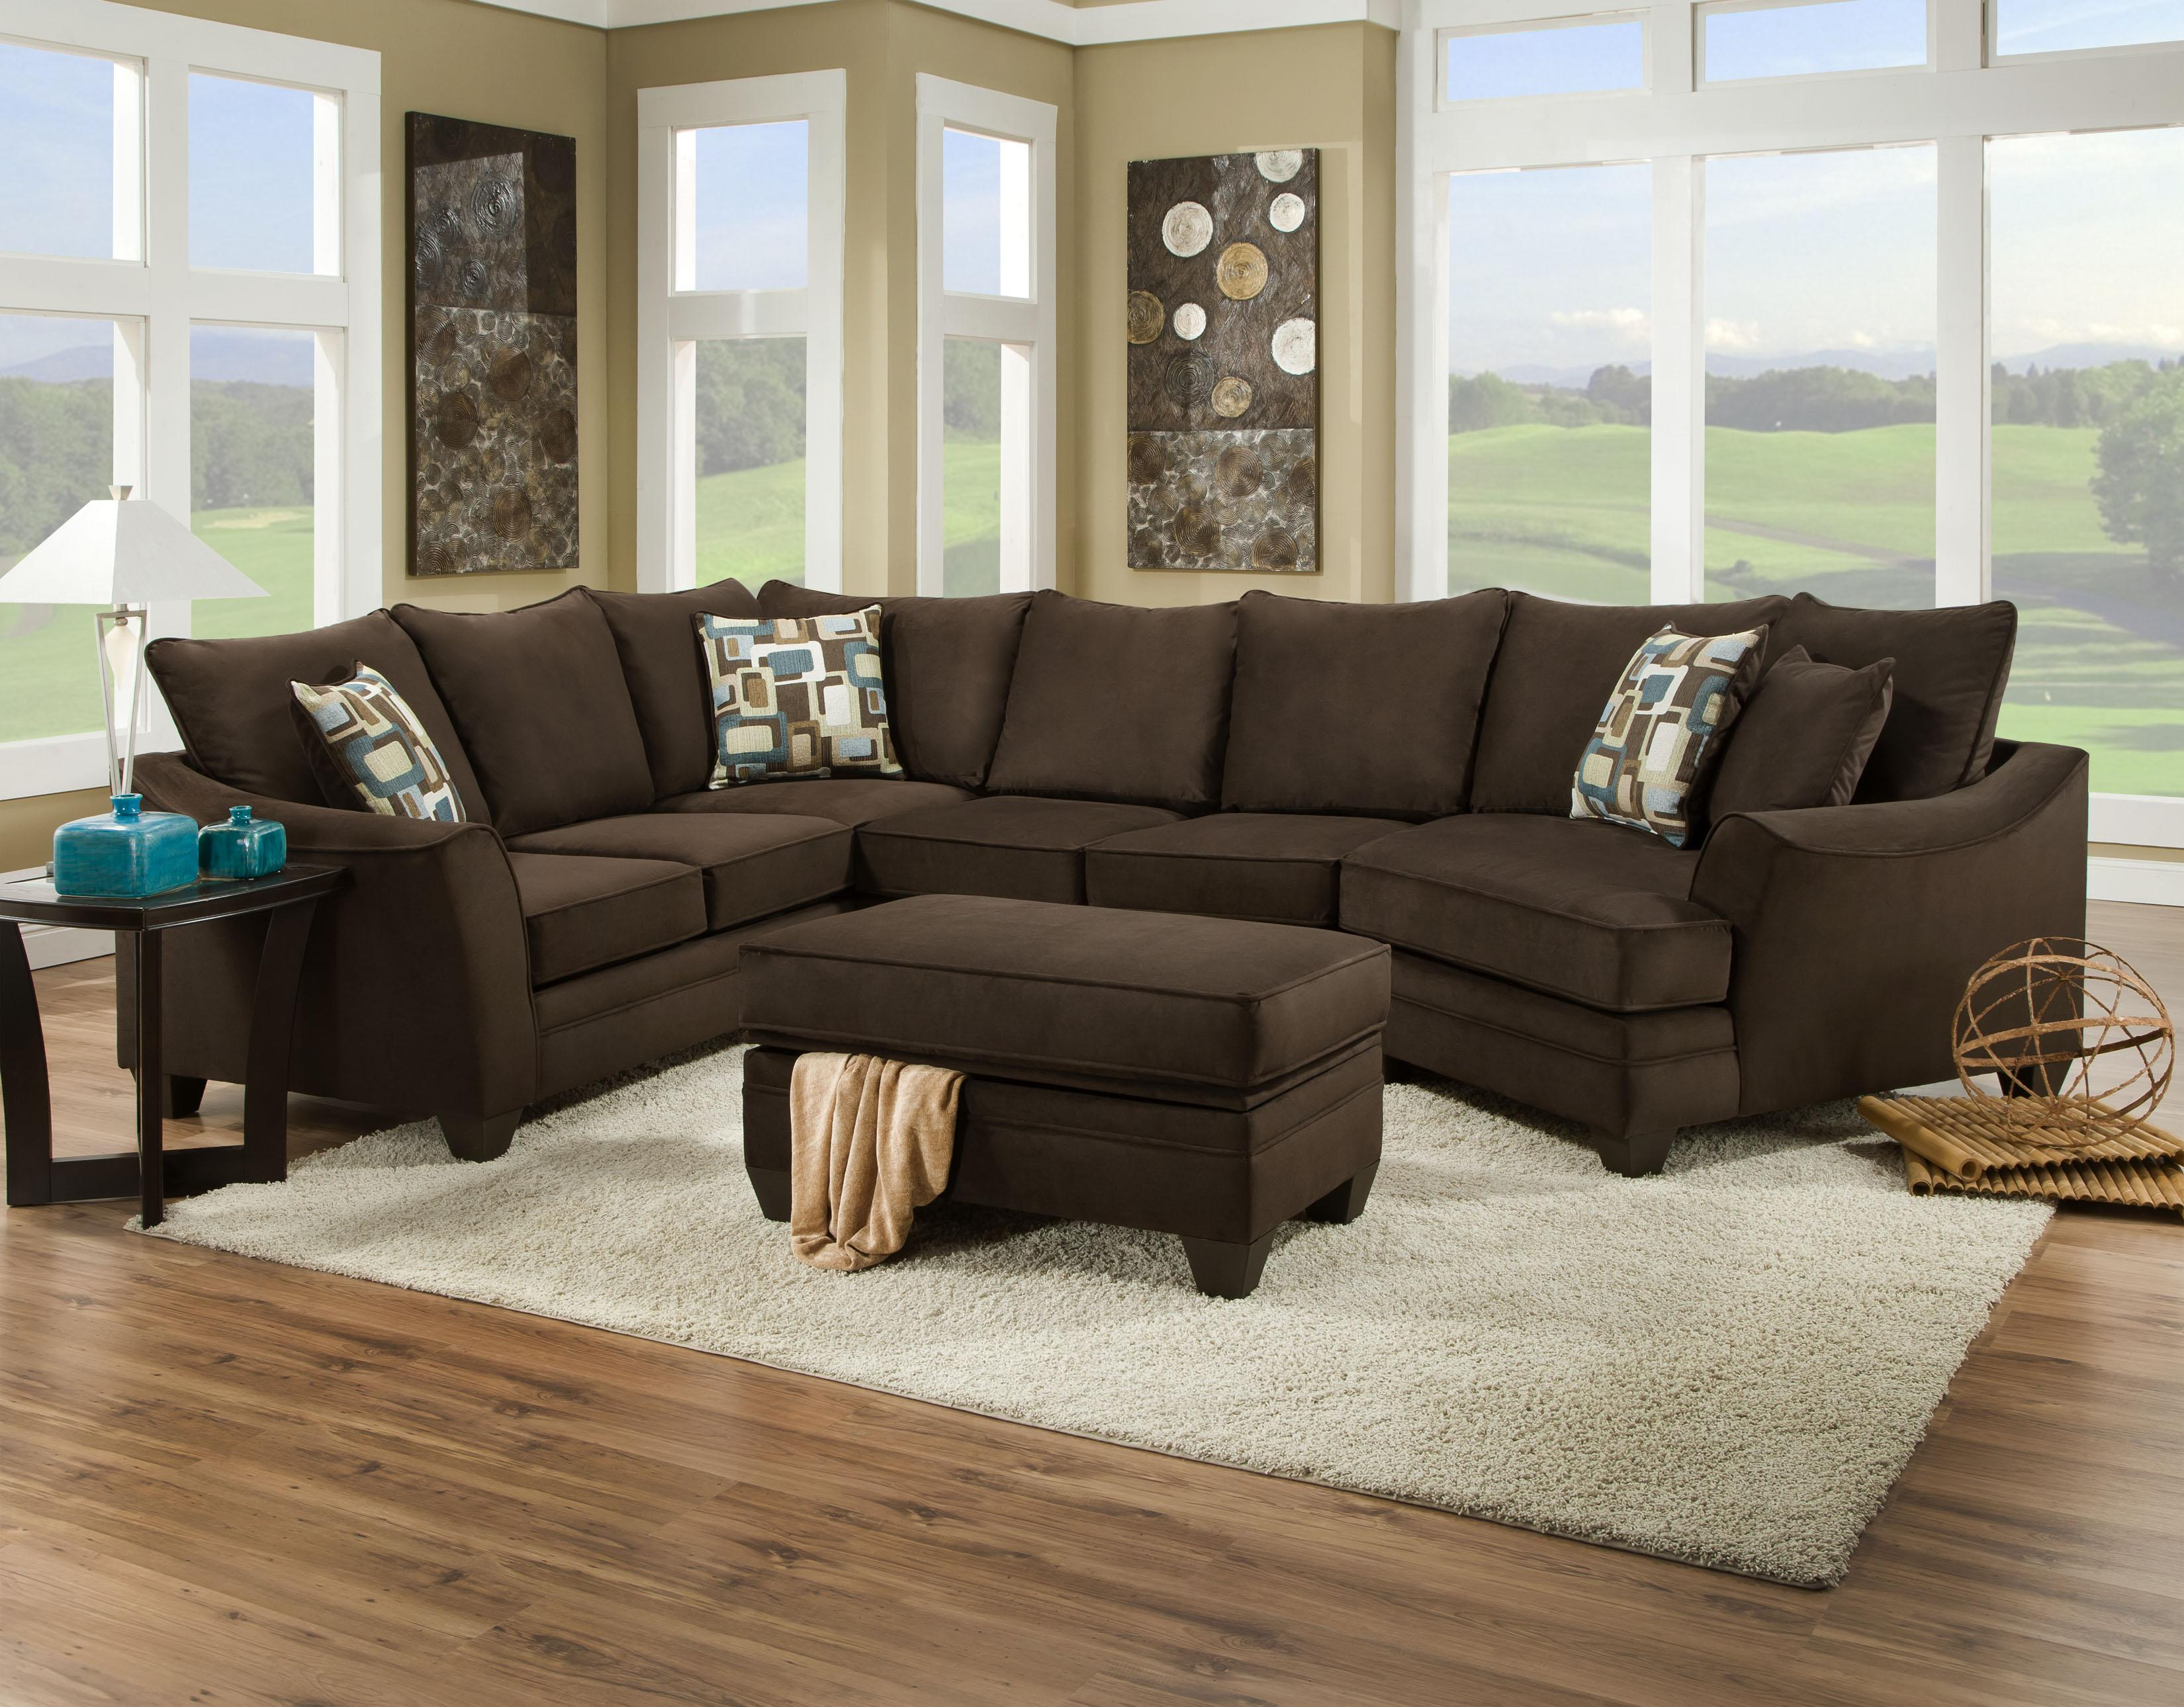 Sectional Sofa that Seats 5 with Left Side Cuddler 3810 by